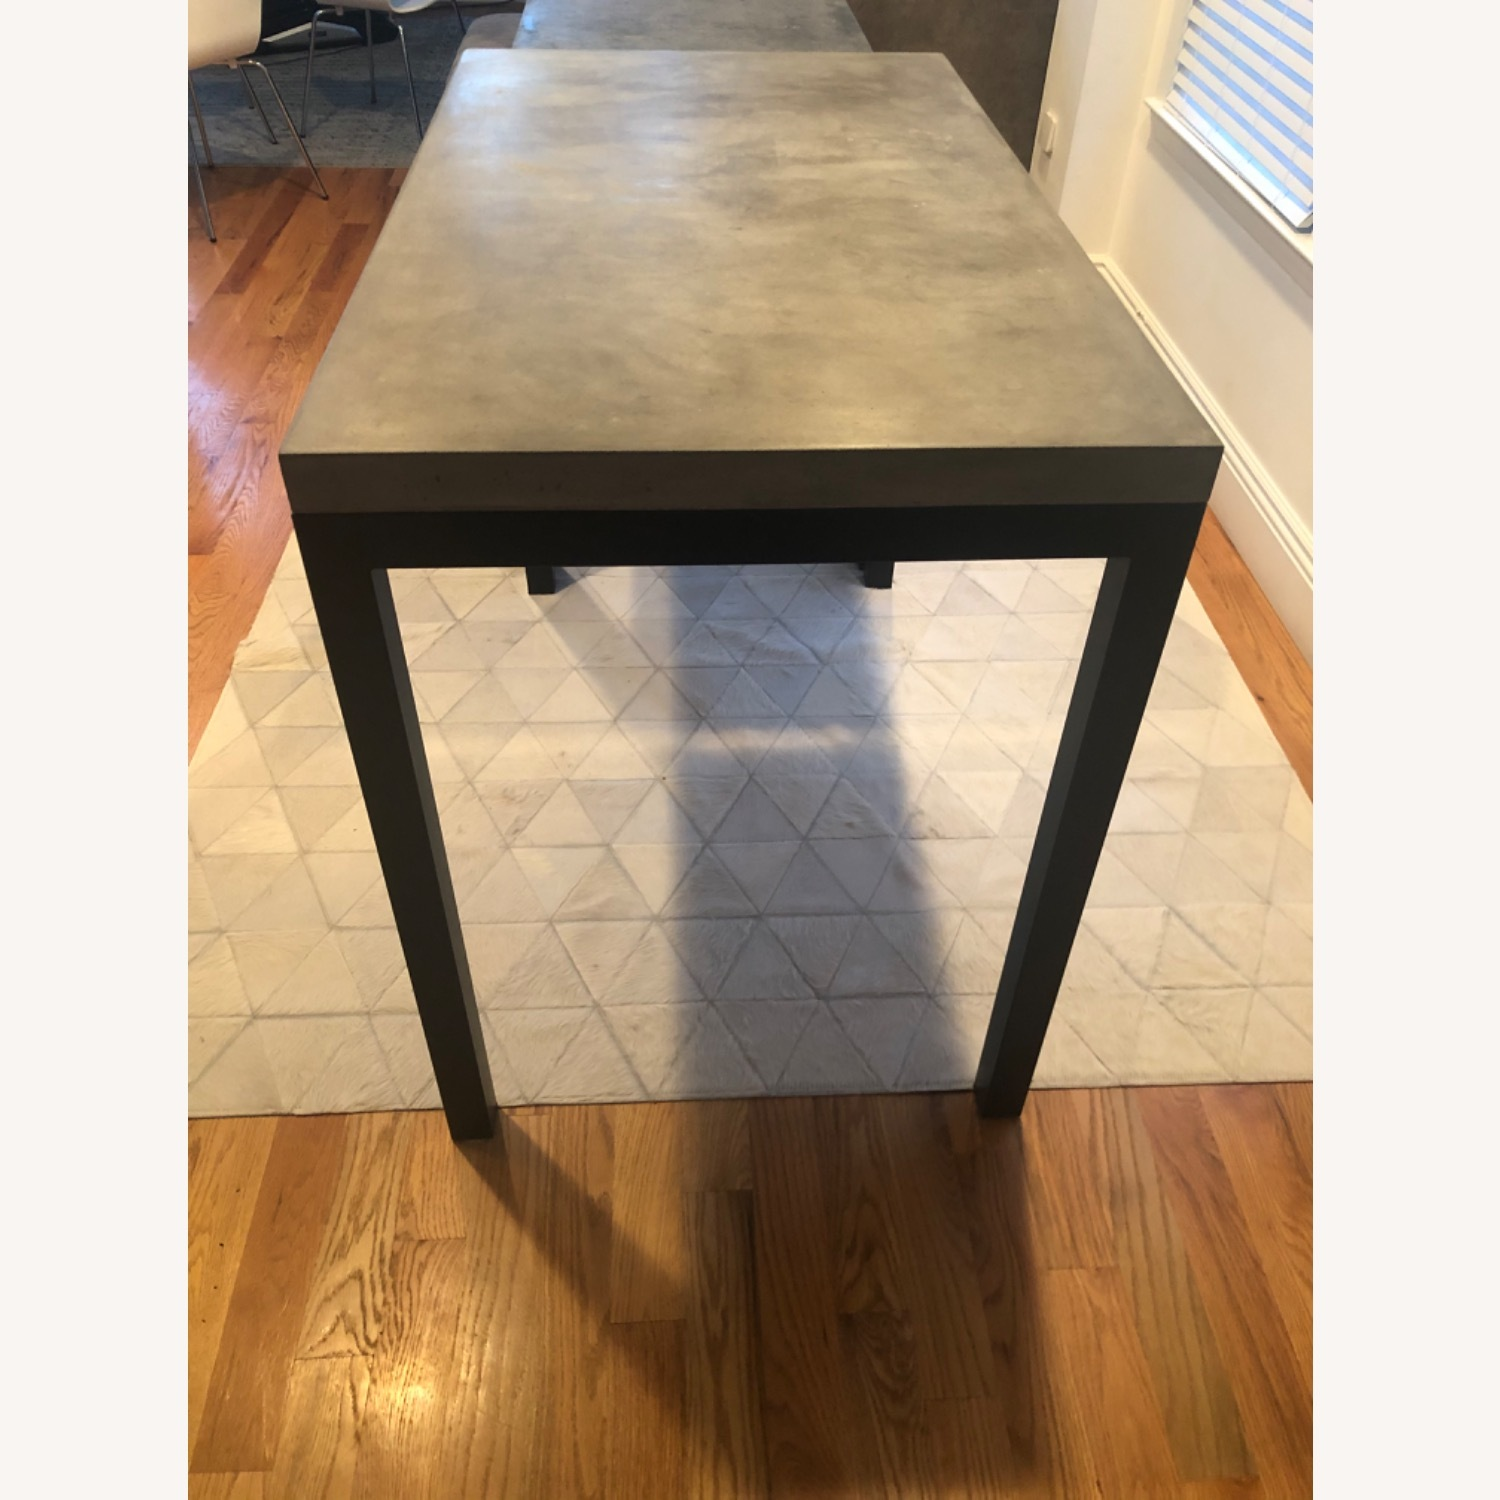 Crate & Barrel Concrete High Dining Table - image-2